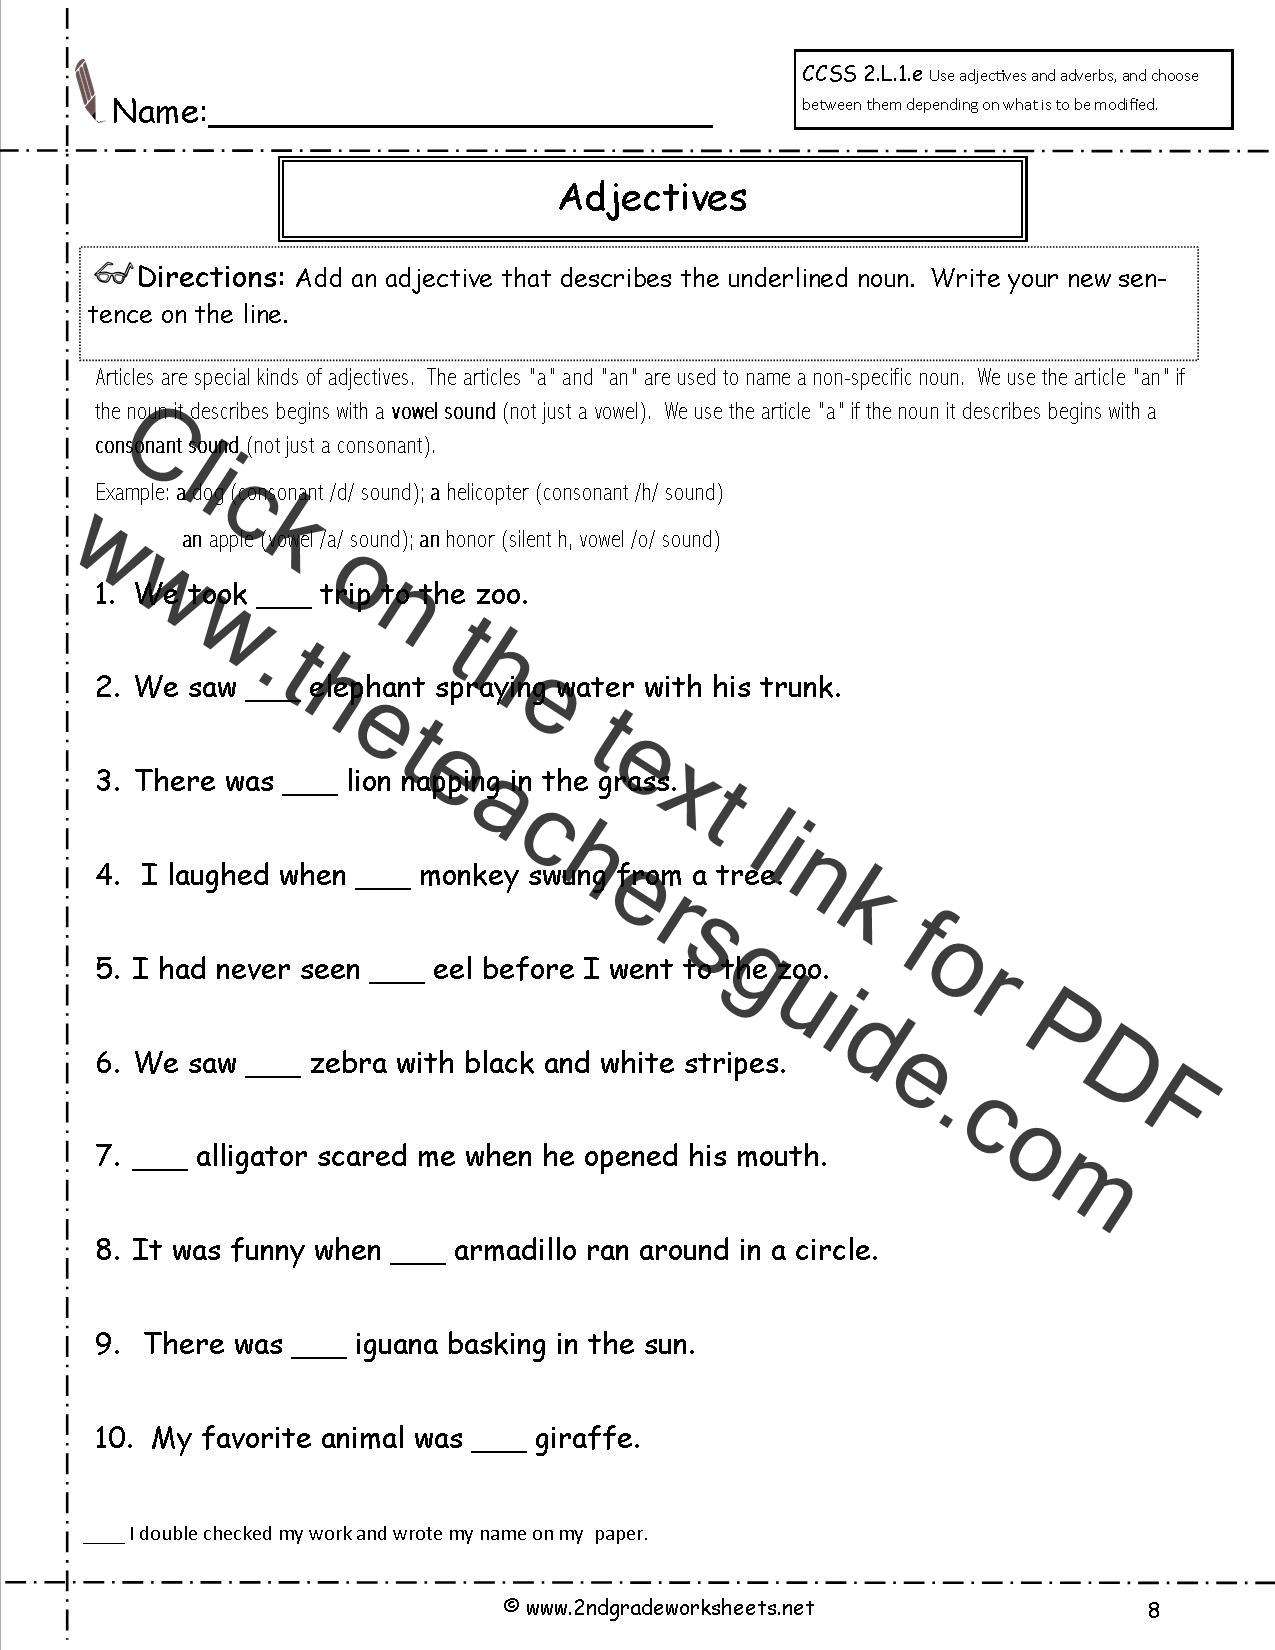 worksheet Free English Worksheets For Year 4 free languagegrammar worksheets and printouts adjectives worksheets